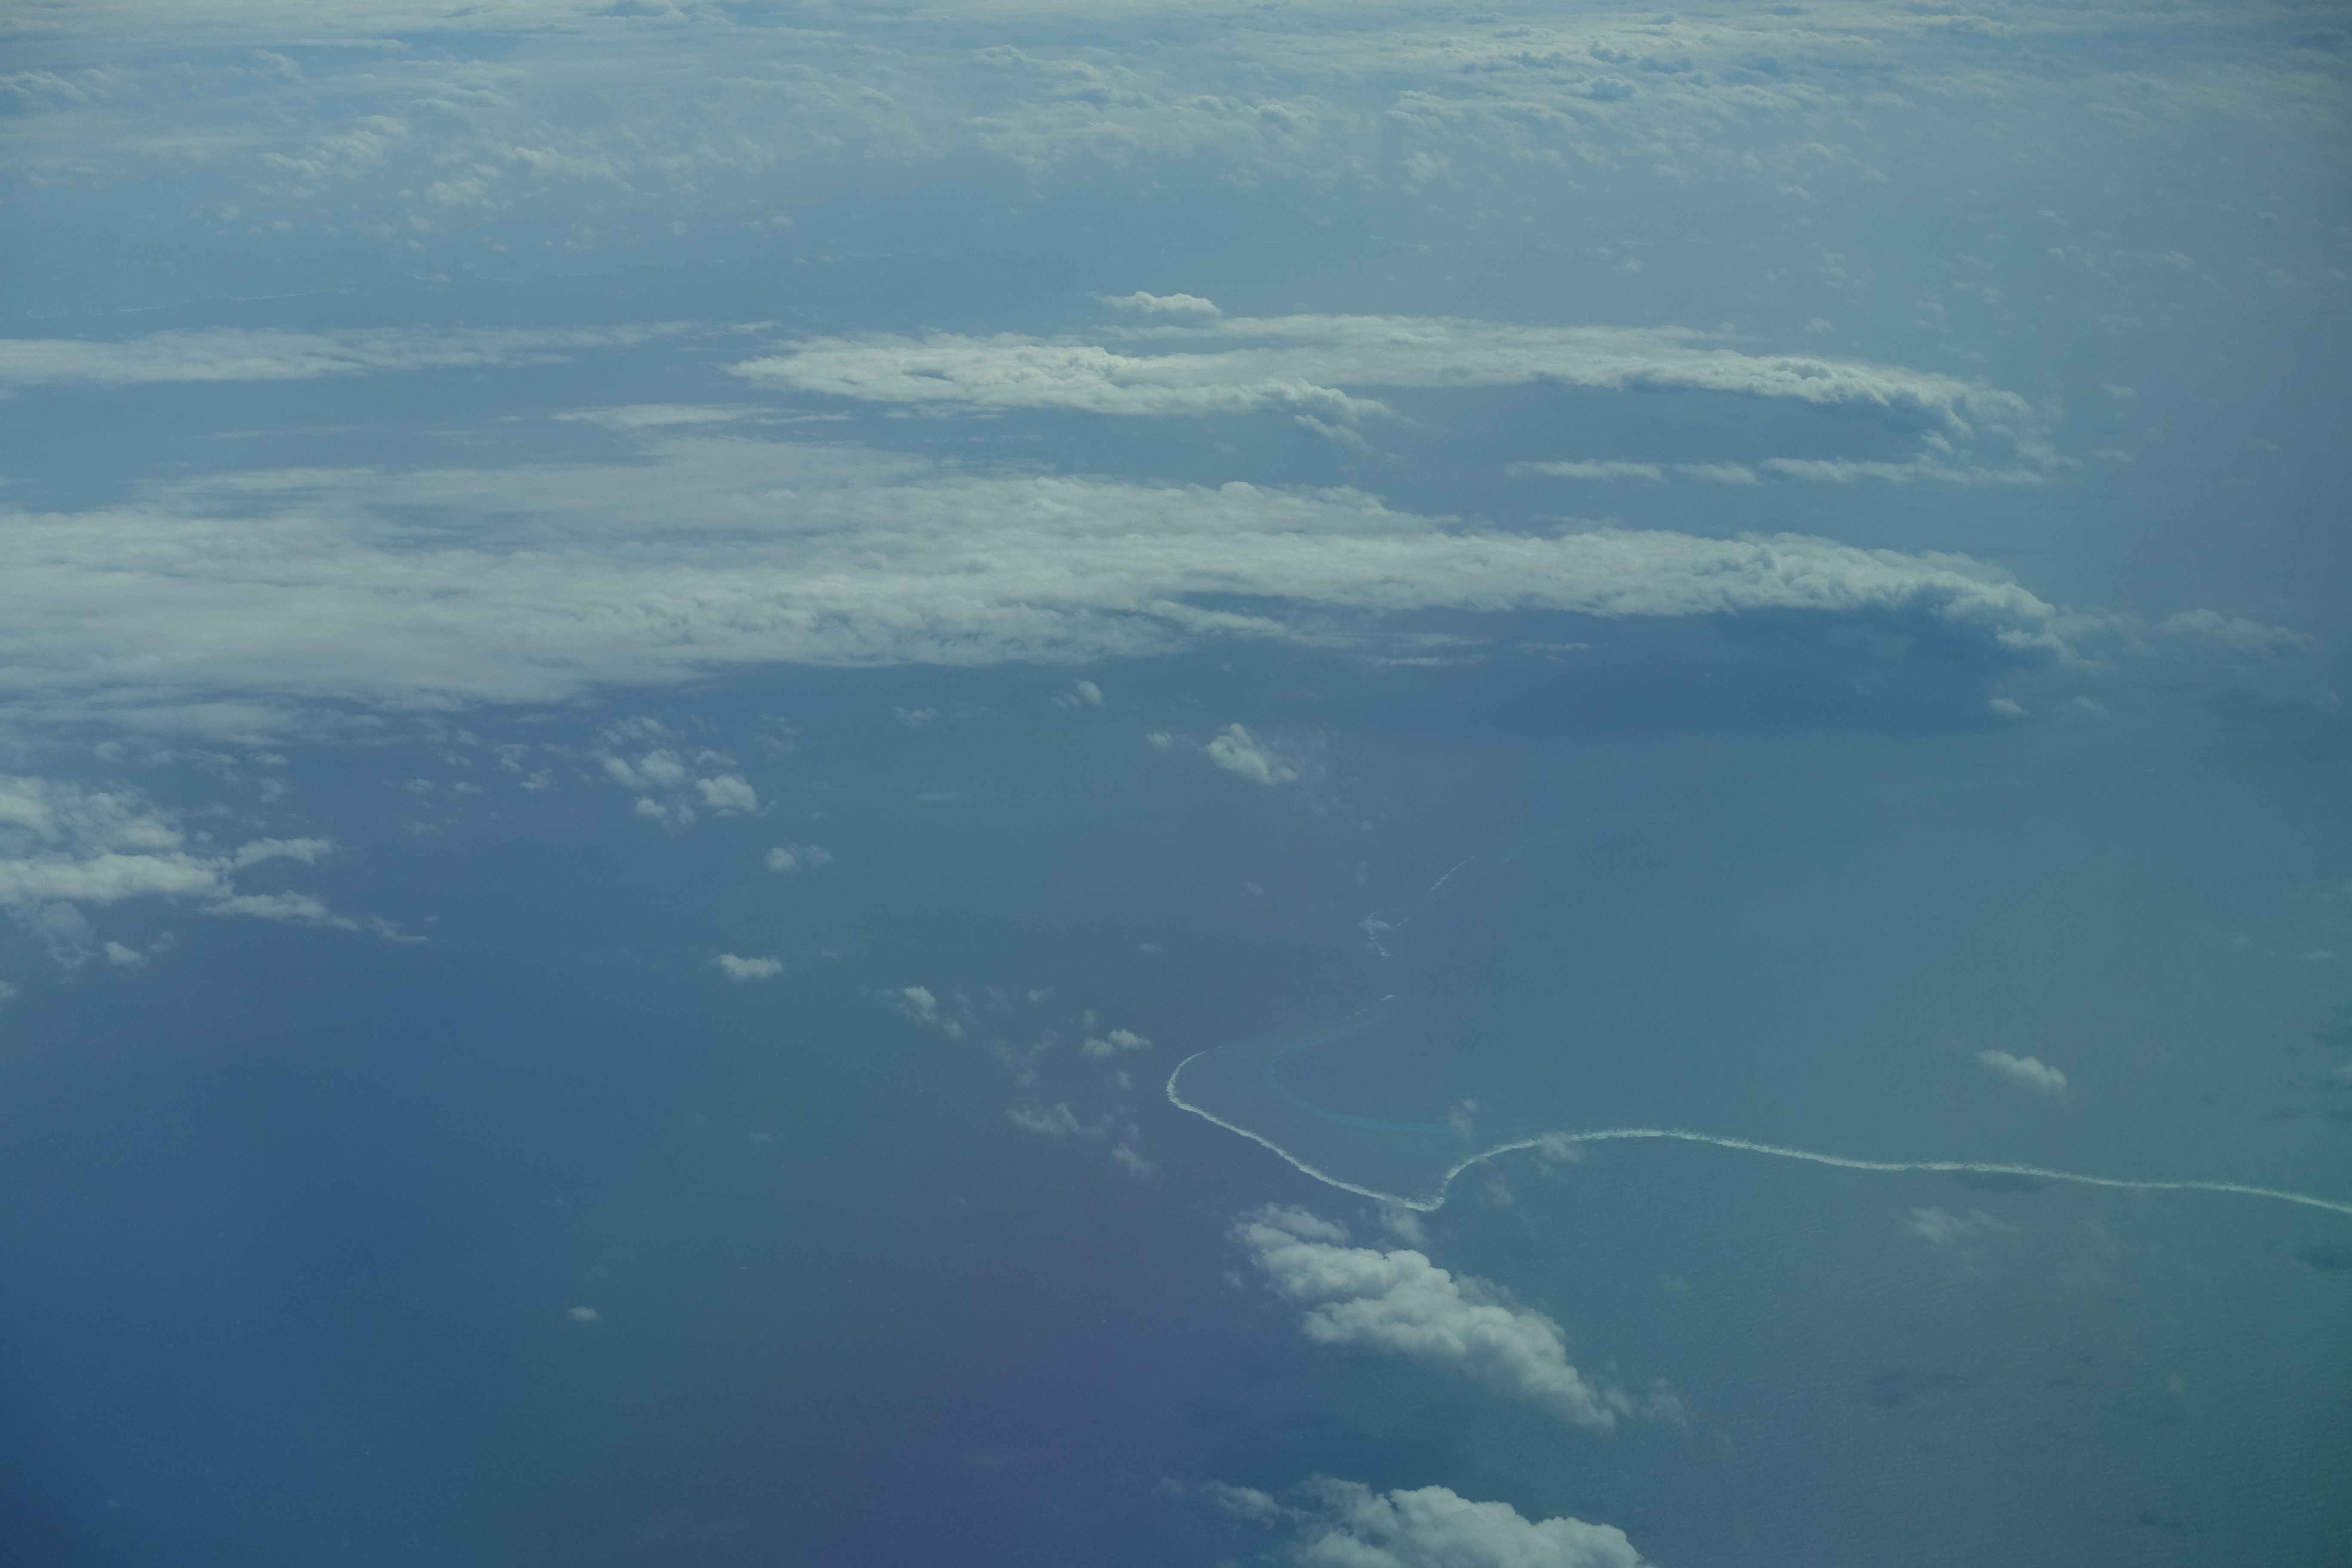 Thin lines of coral reefs